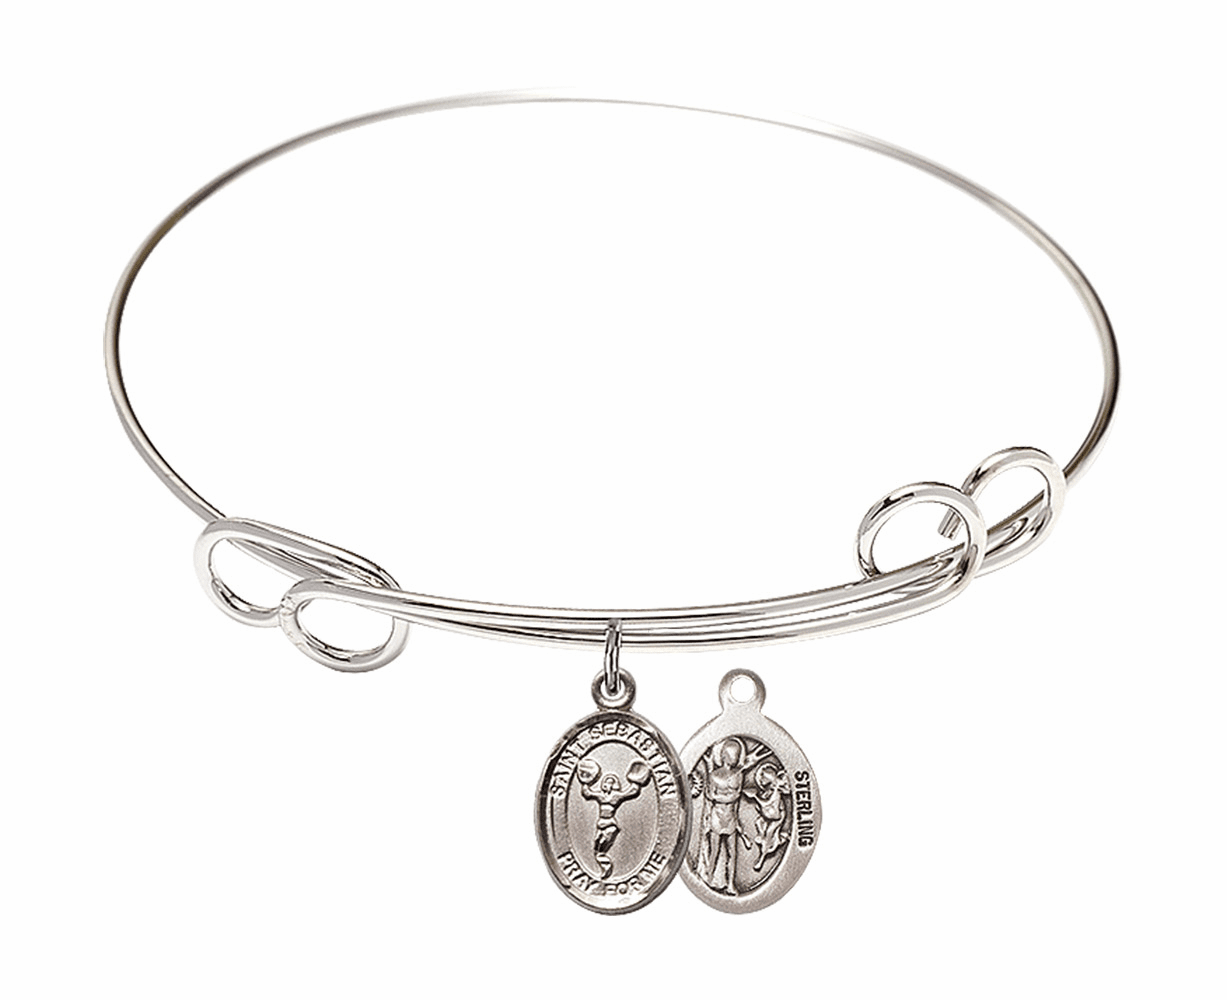 St Sebastian Sports Bangle Bracelets